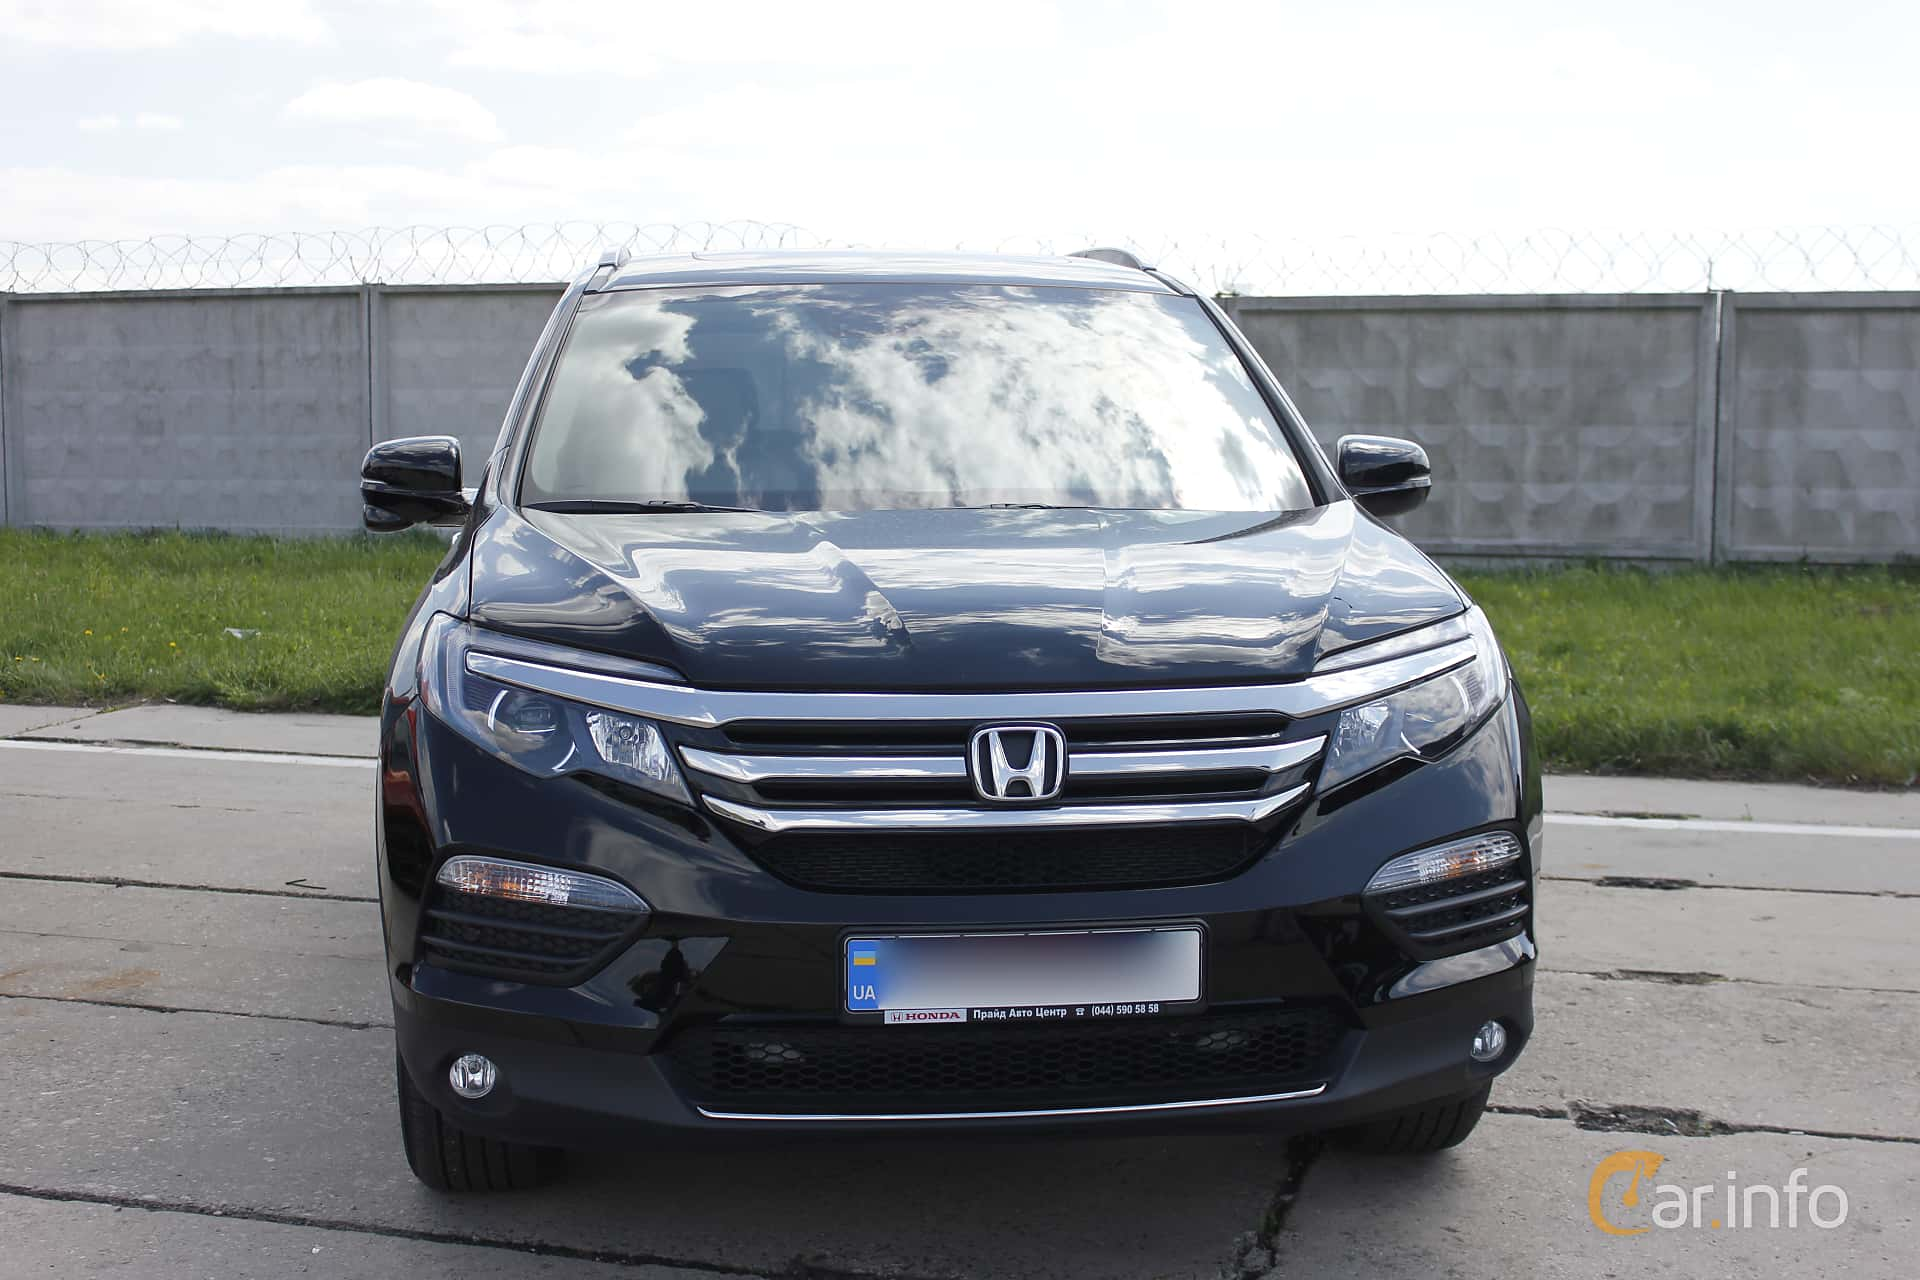 Honda Pilot 3.5 V6 Automatic, 280hp, 2017 at Old Car Land no.1 2018